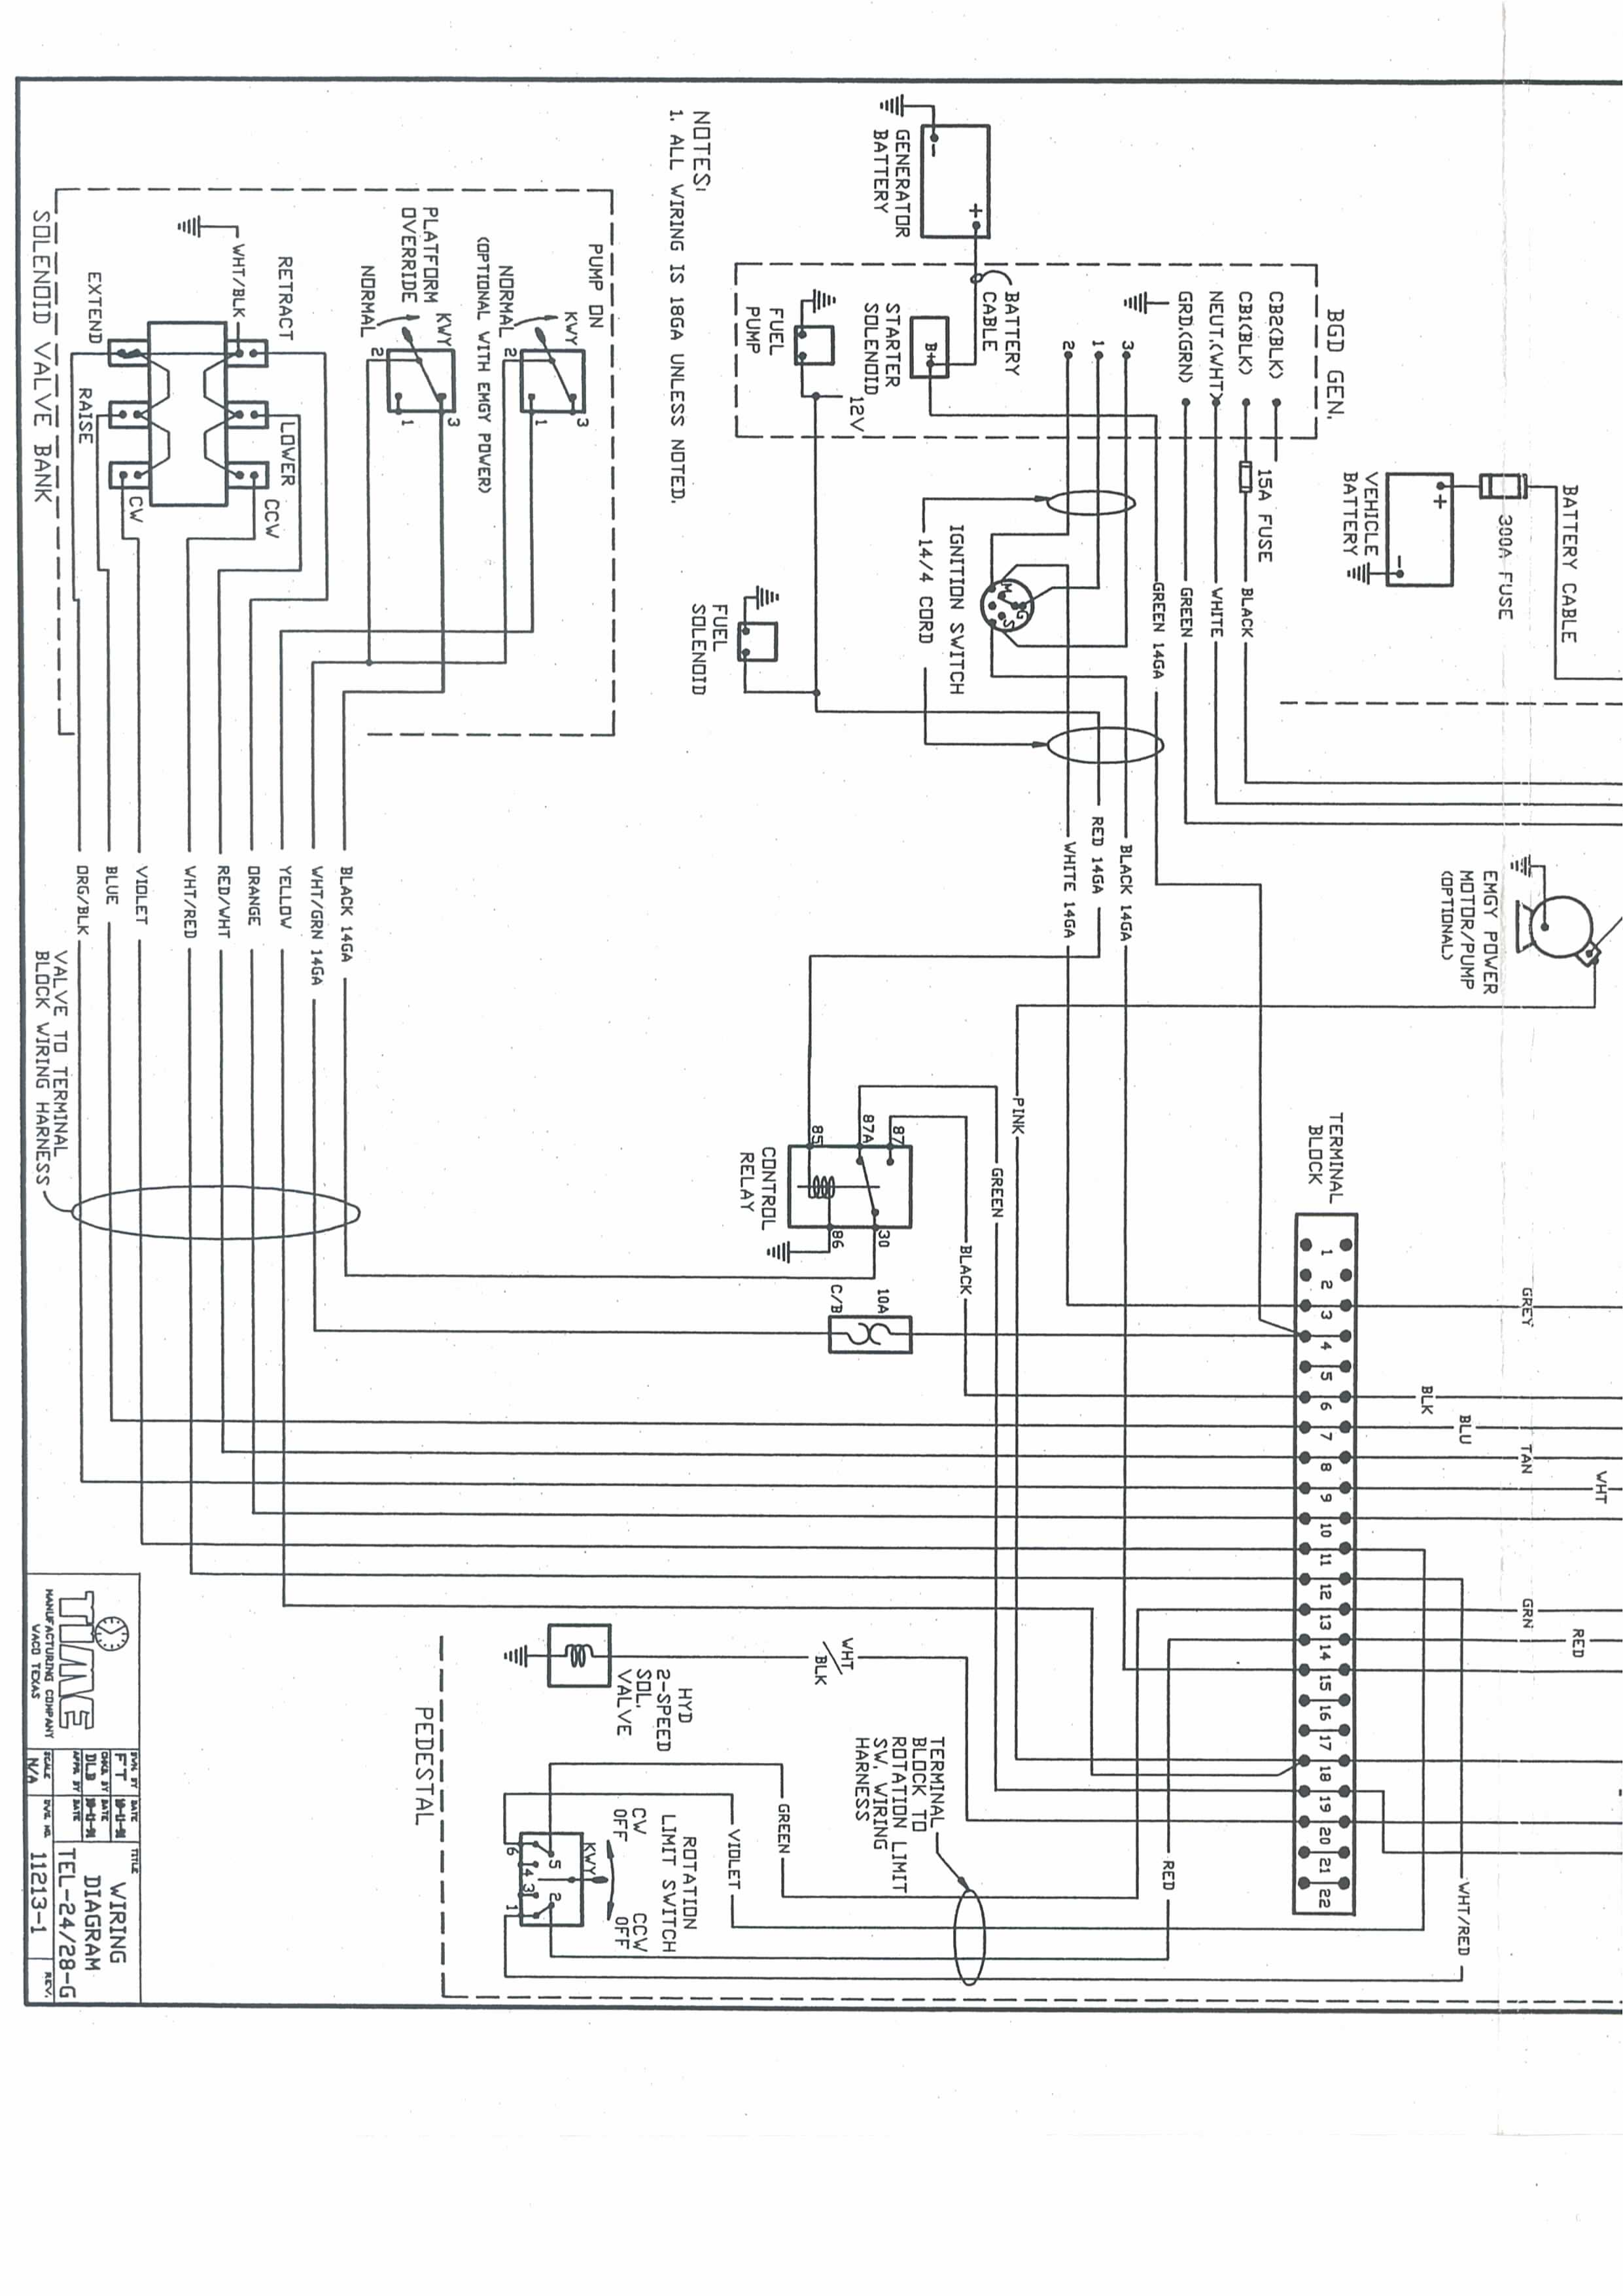 i obtain a wiring digram for a 1982 versa lift tel28g bucket unit here you go let me know if you need more help graphic graphic